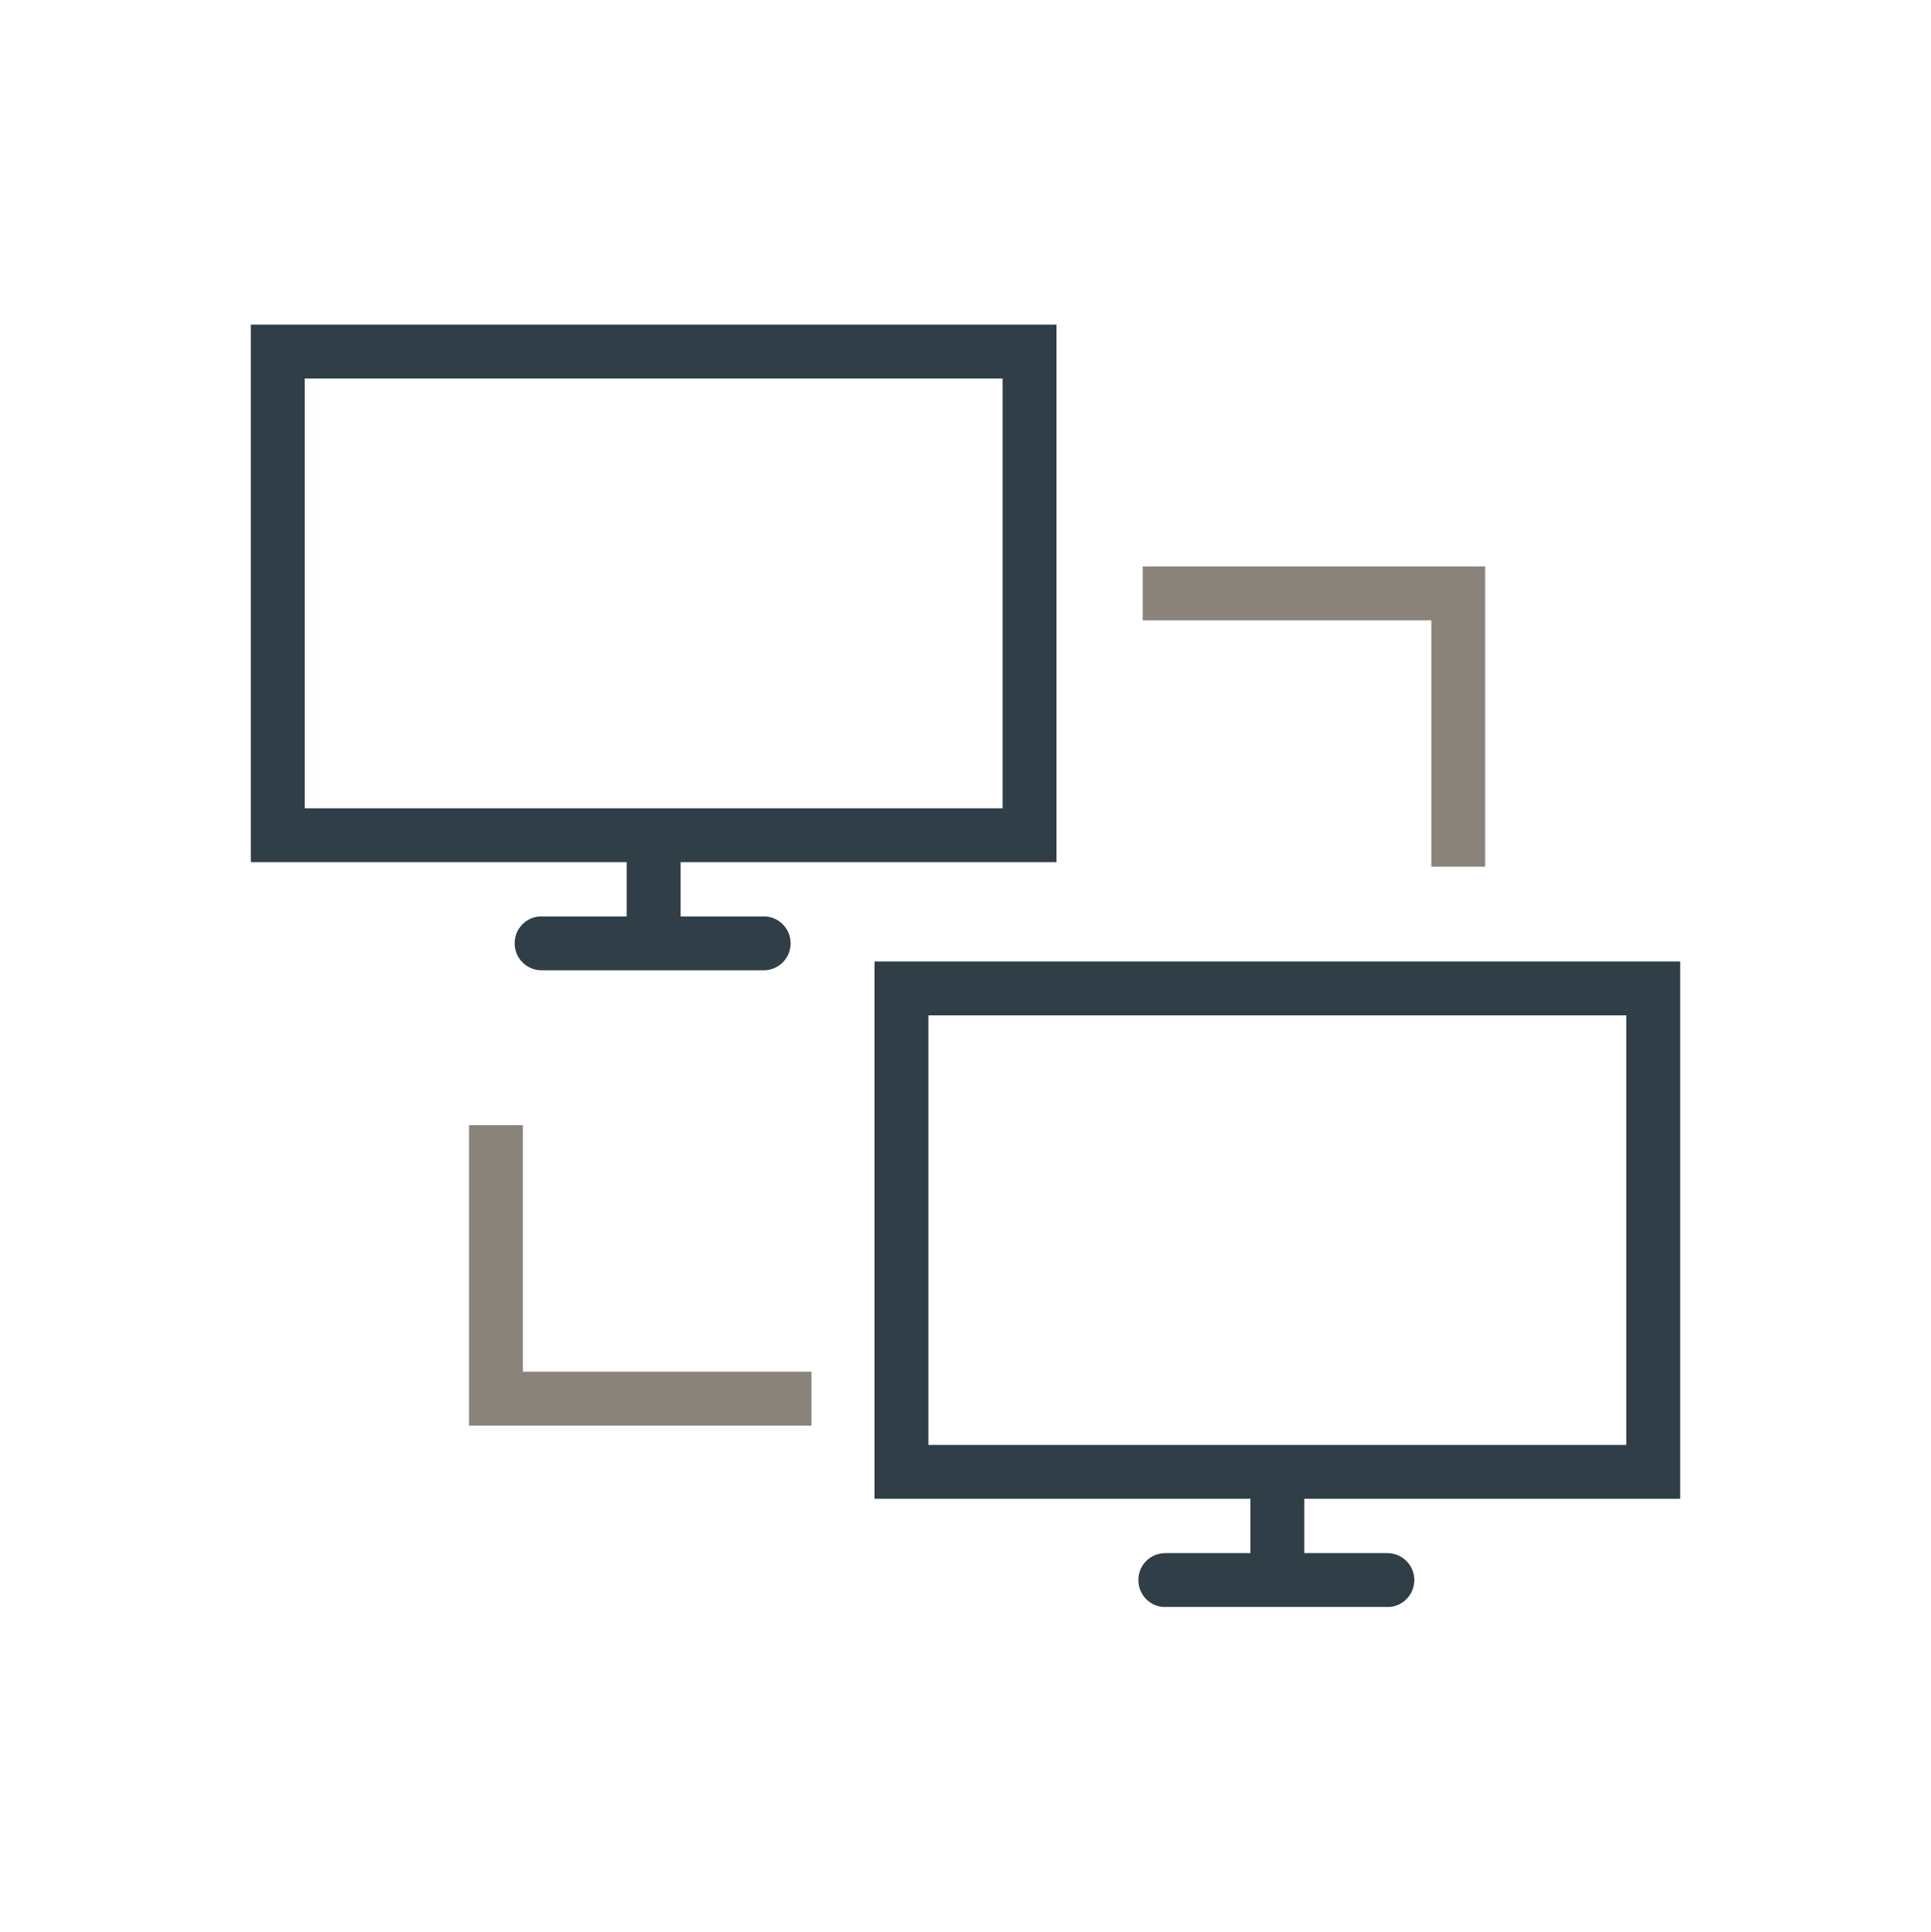 icon-create-share.png